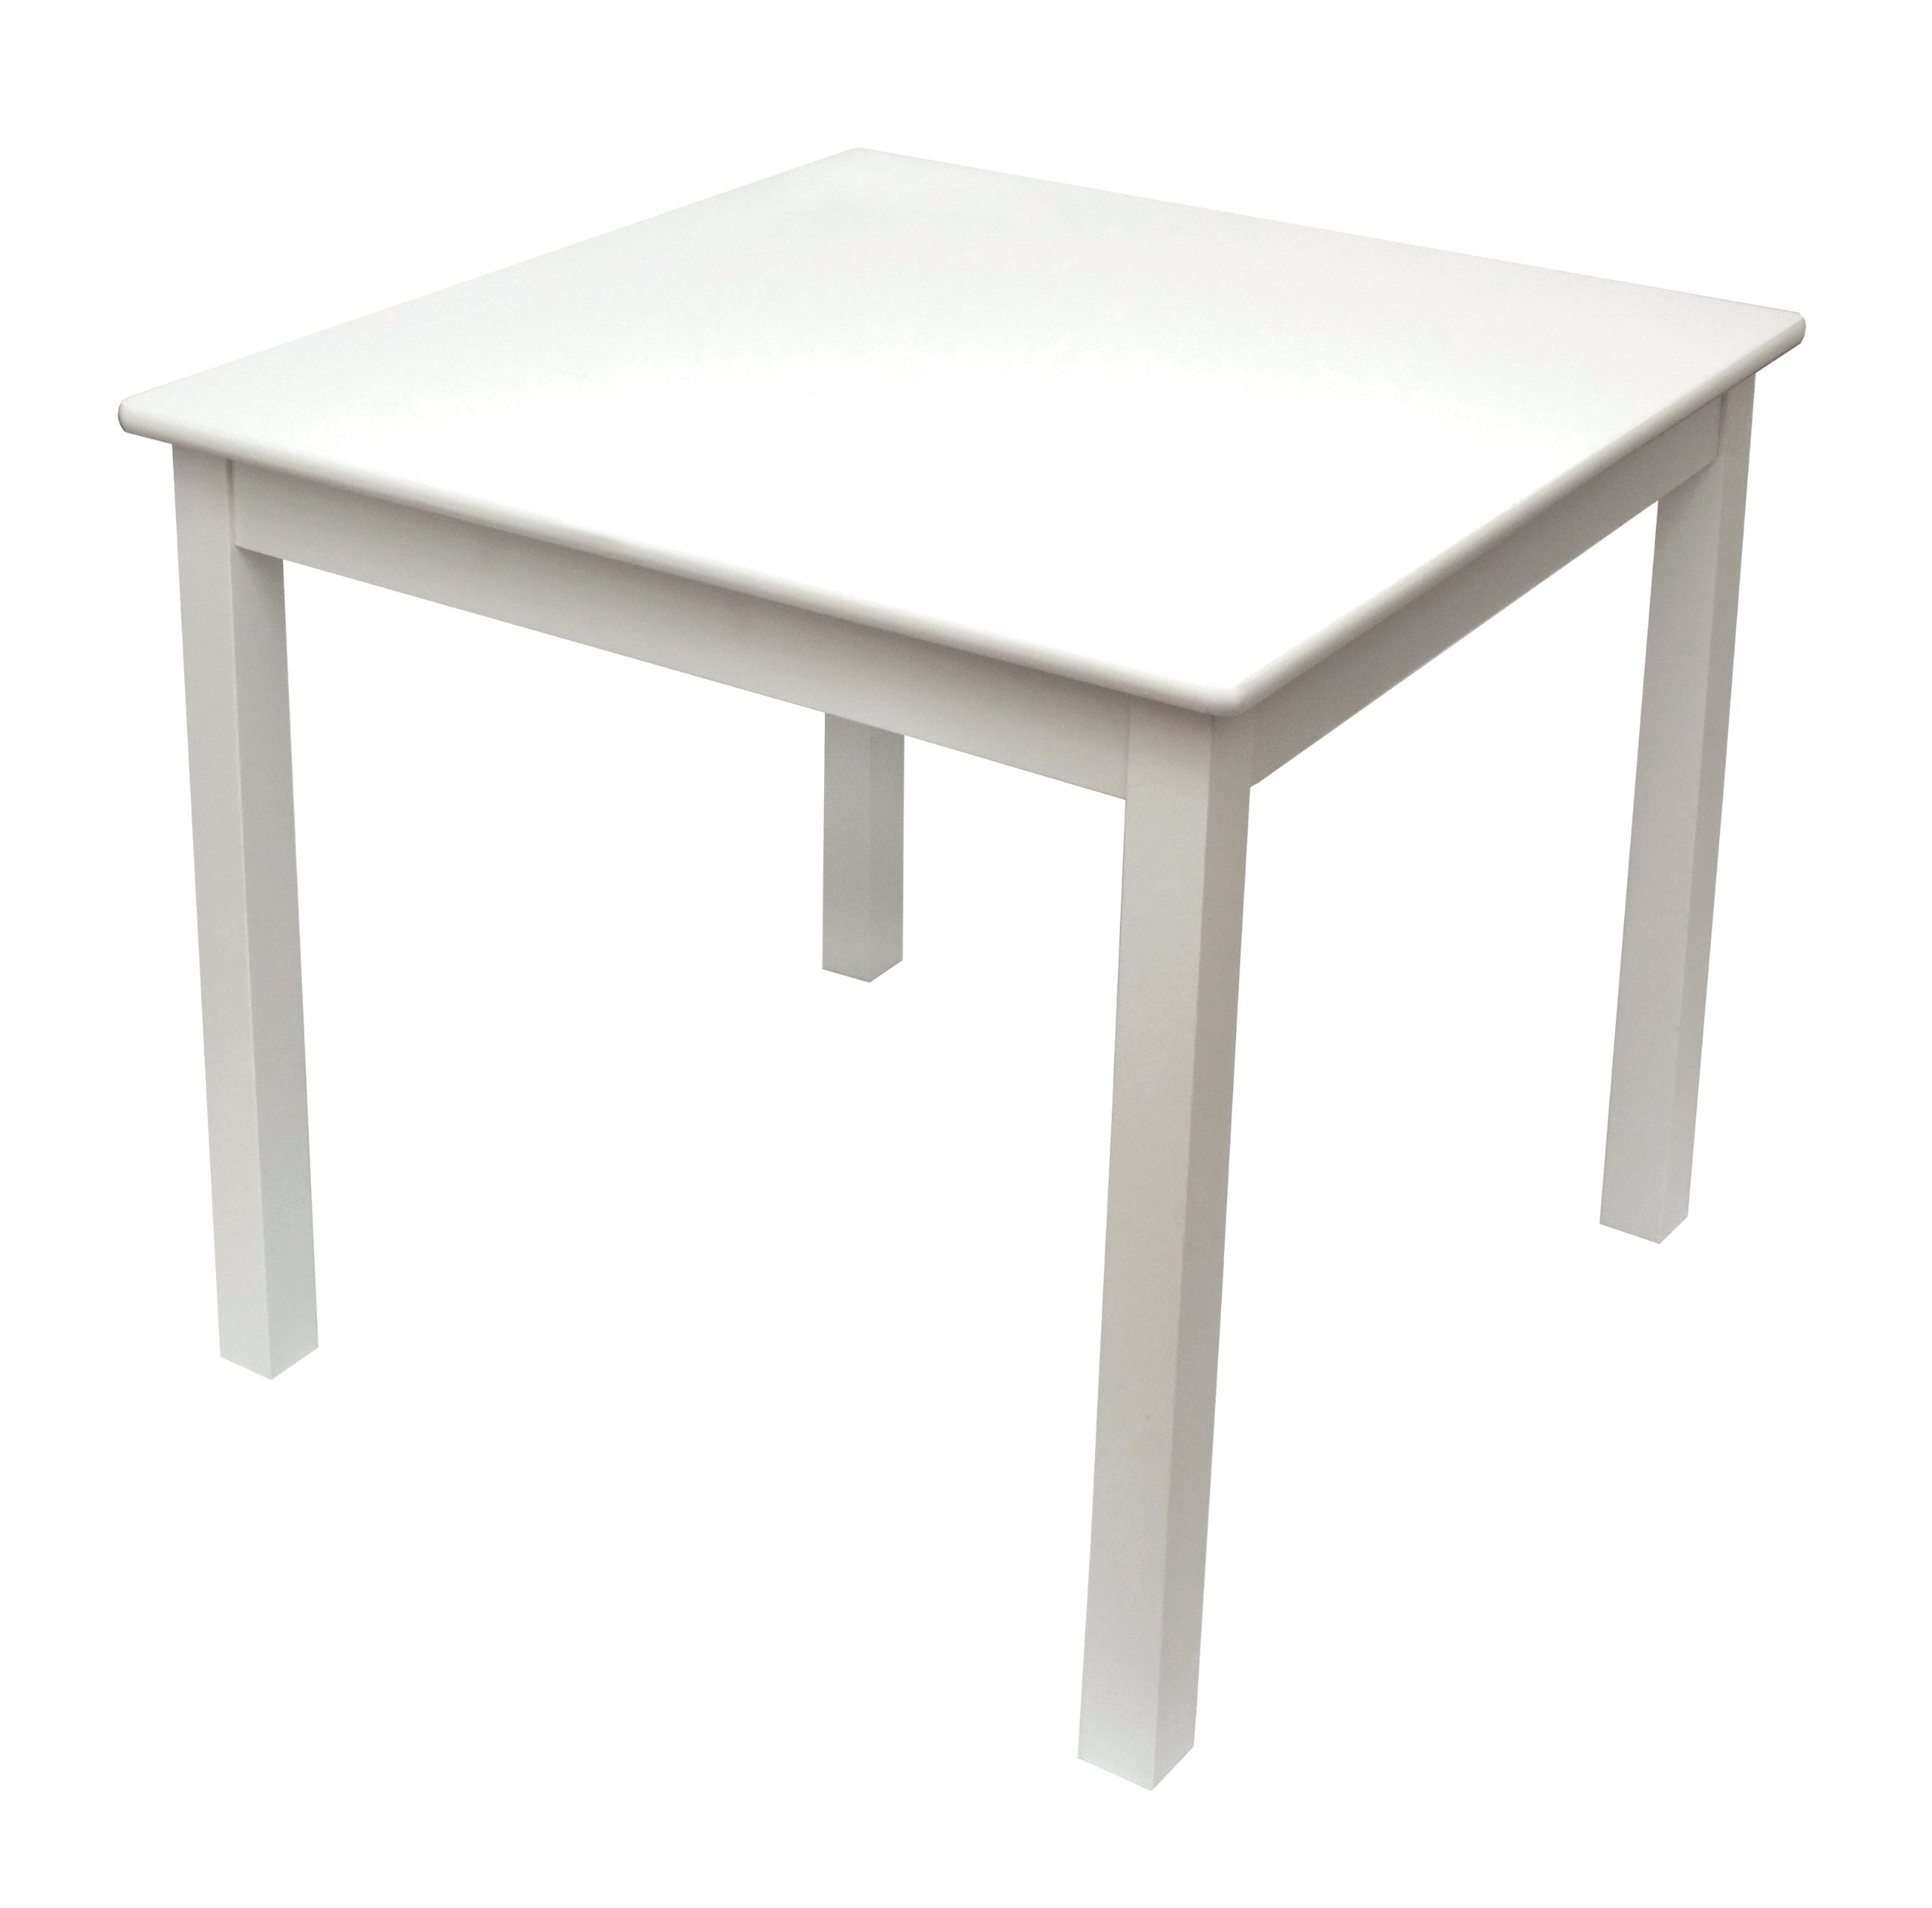 Lipper International Child's Table for Play or Activity, 23.75'' x 23.75'' Square, 21.66'' Tall, White by Lipper International